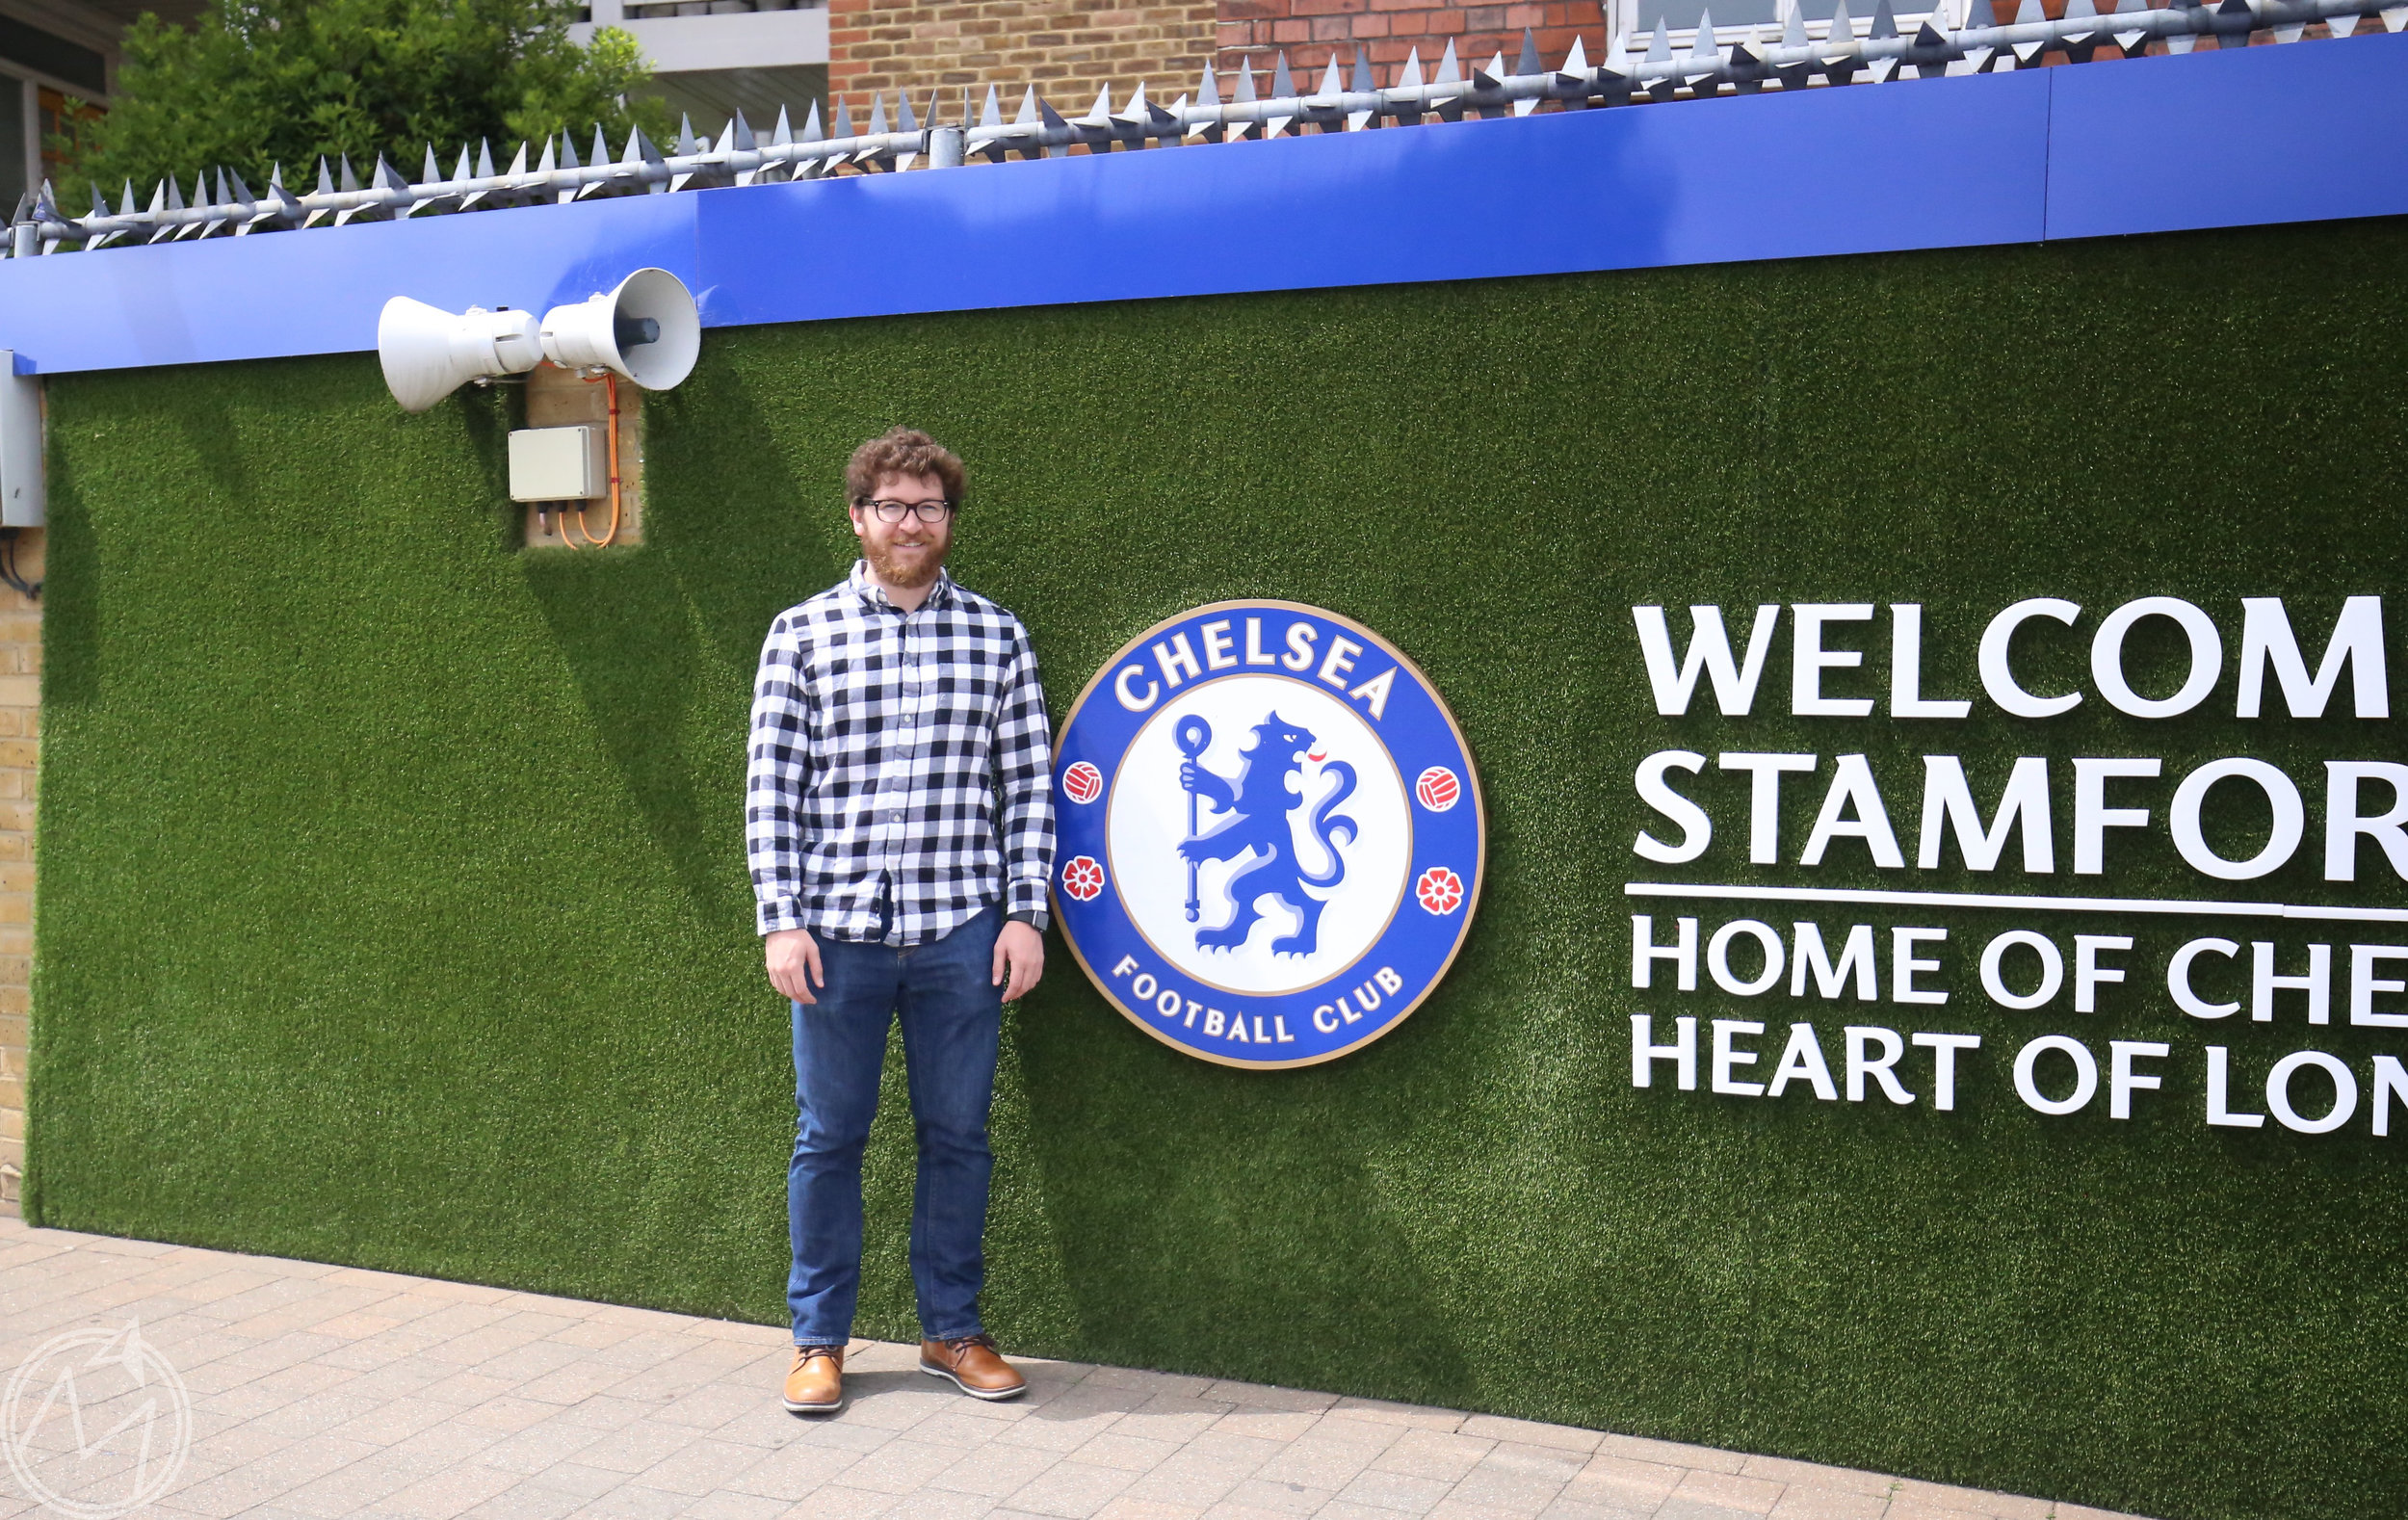 i made him take this picture because chelsea is his premier league team. he only pretended to not be totally into it ;)